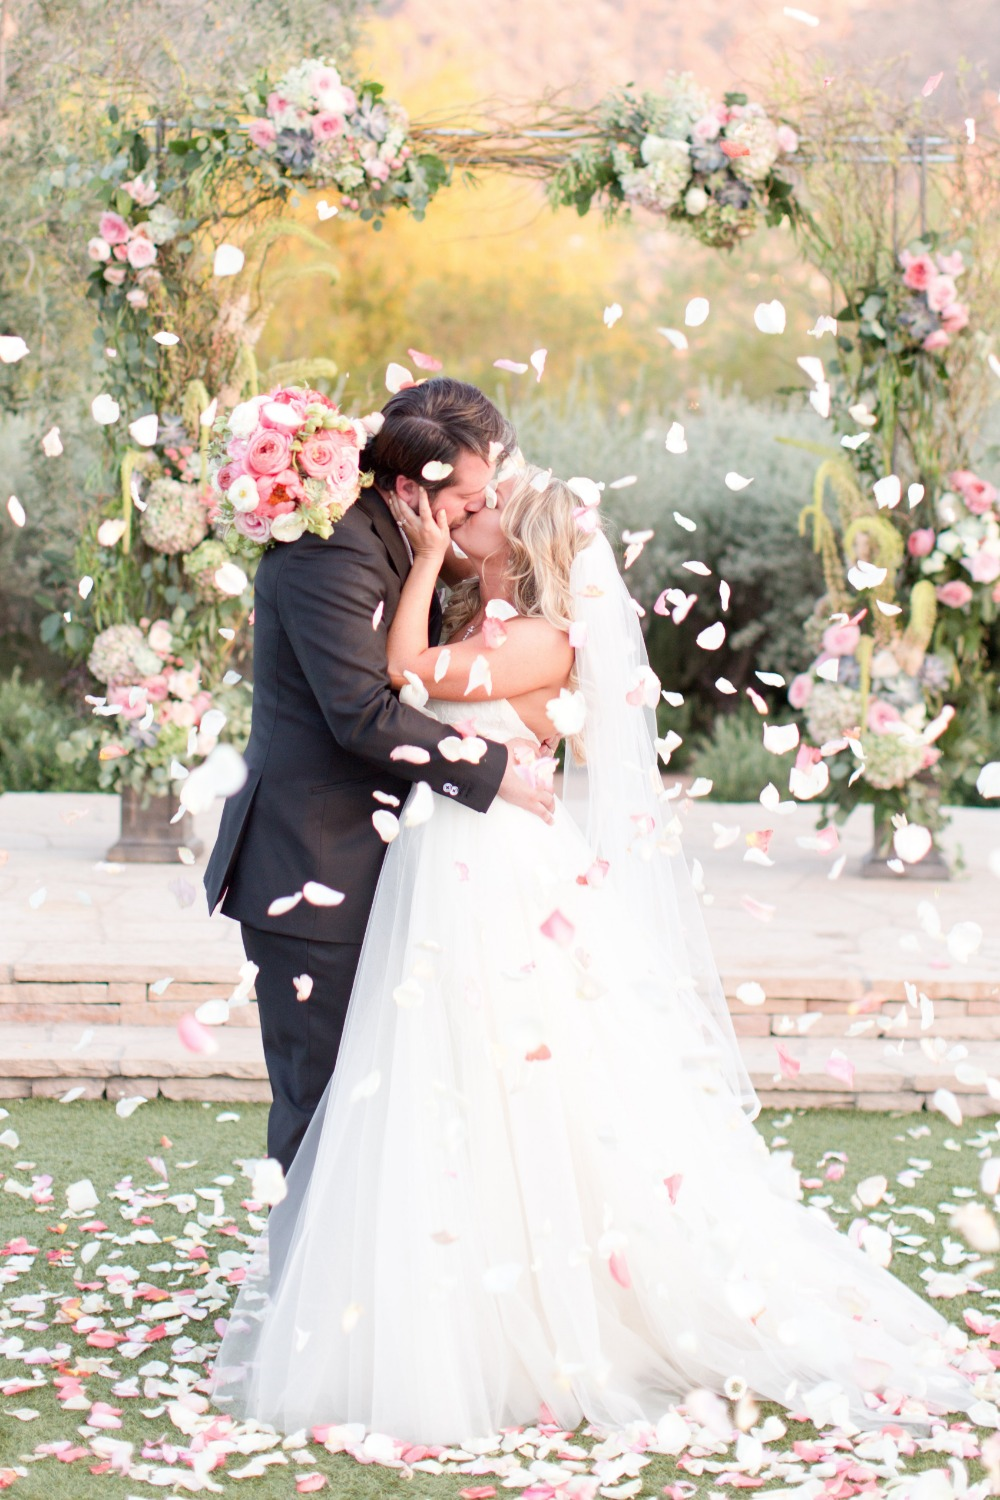 Romantic rose petal toss photo idea